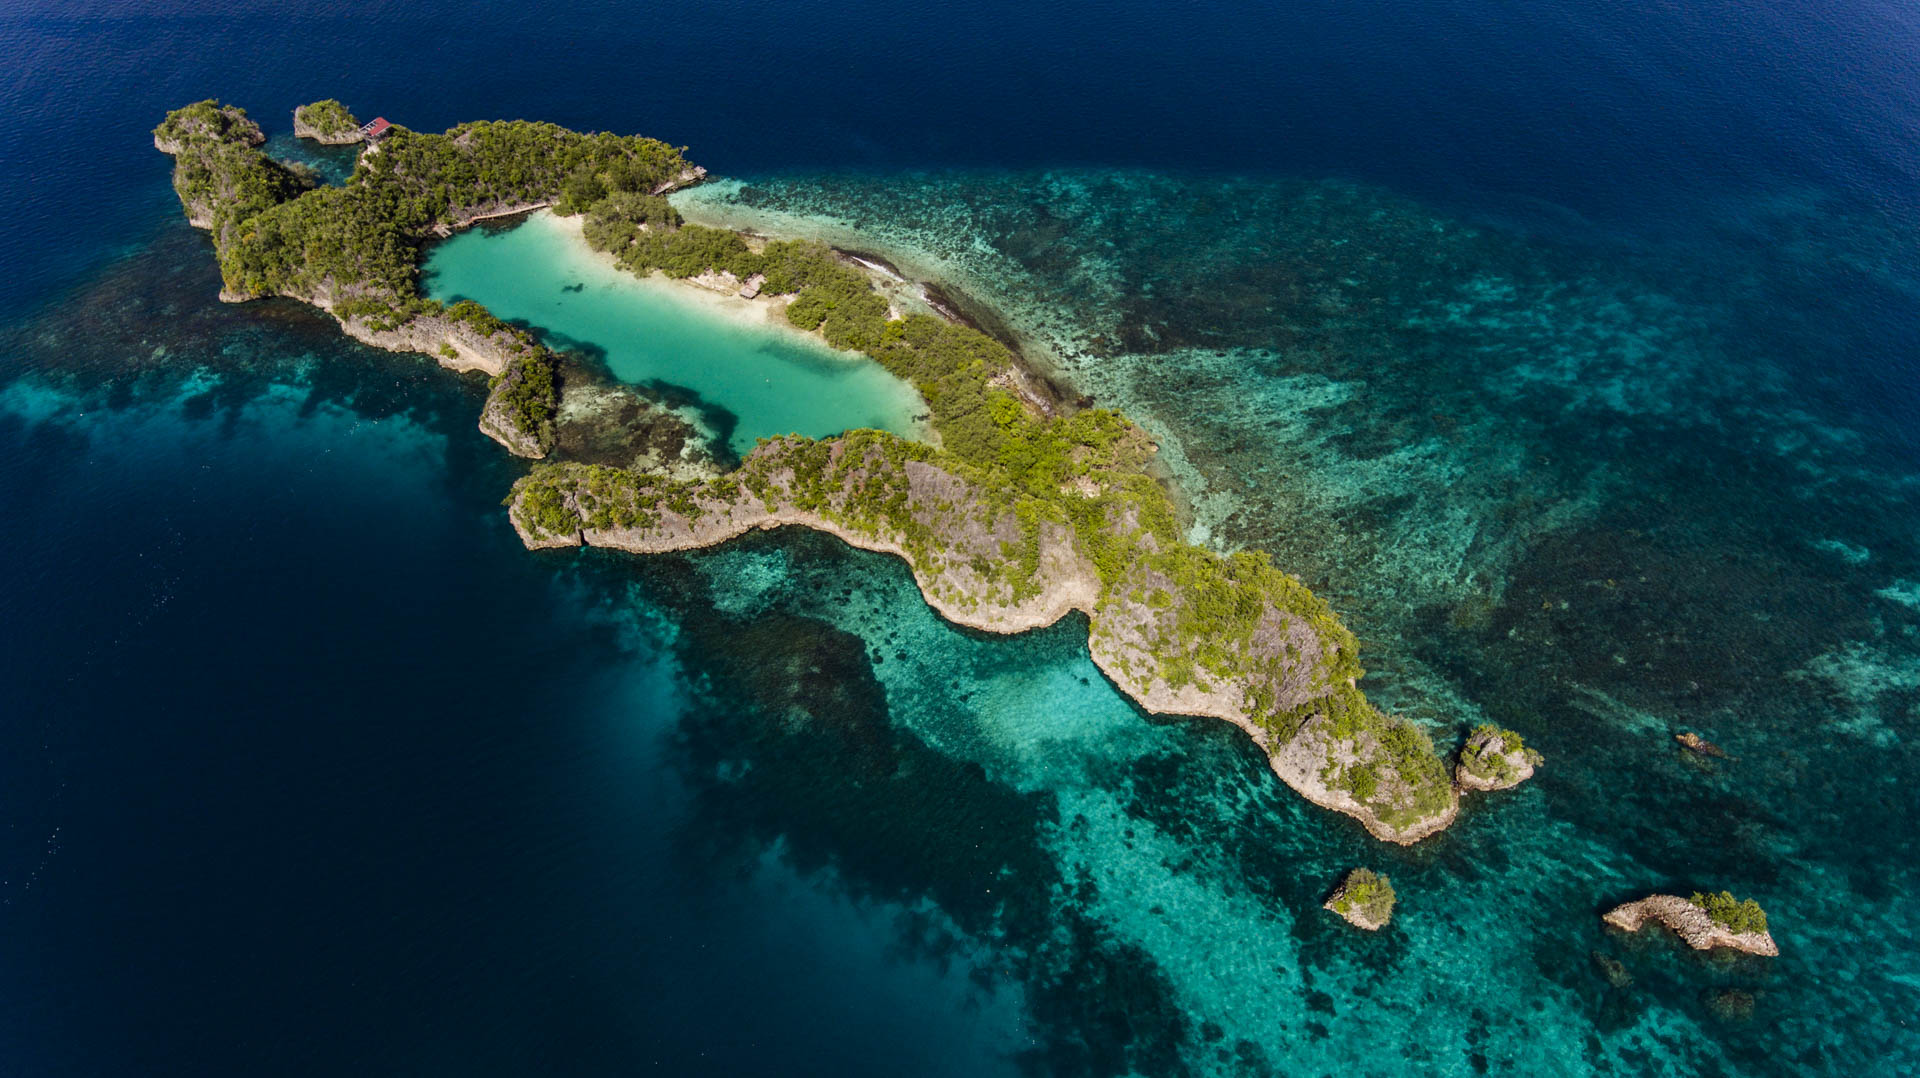 aerial view of tropical island and coral lagoon